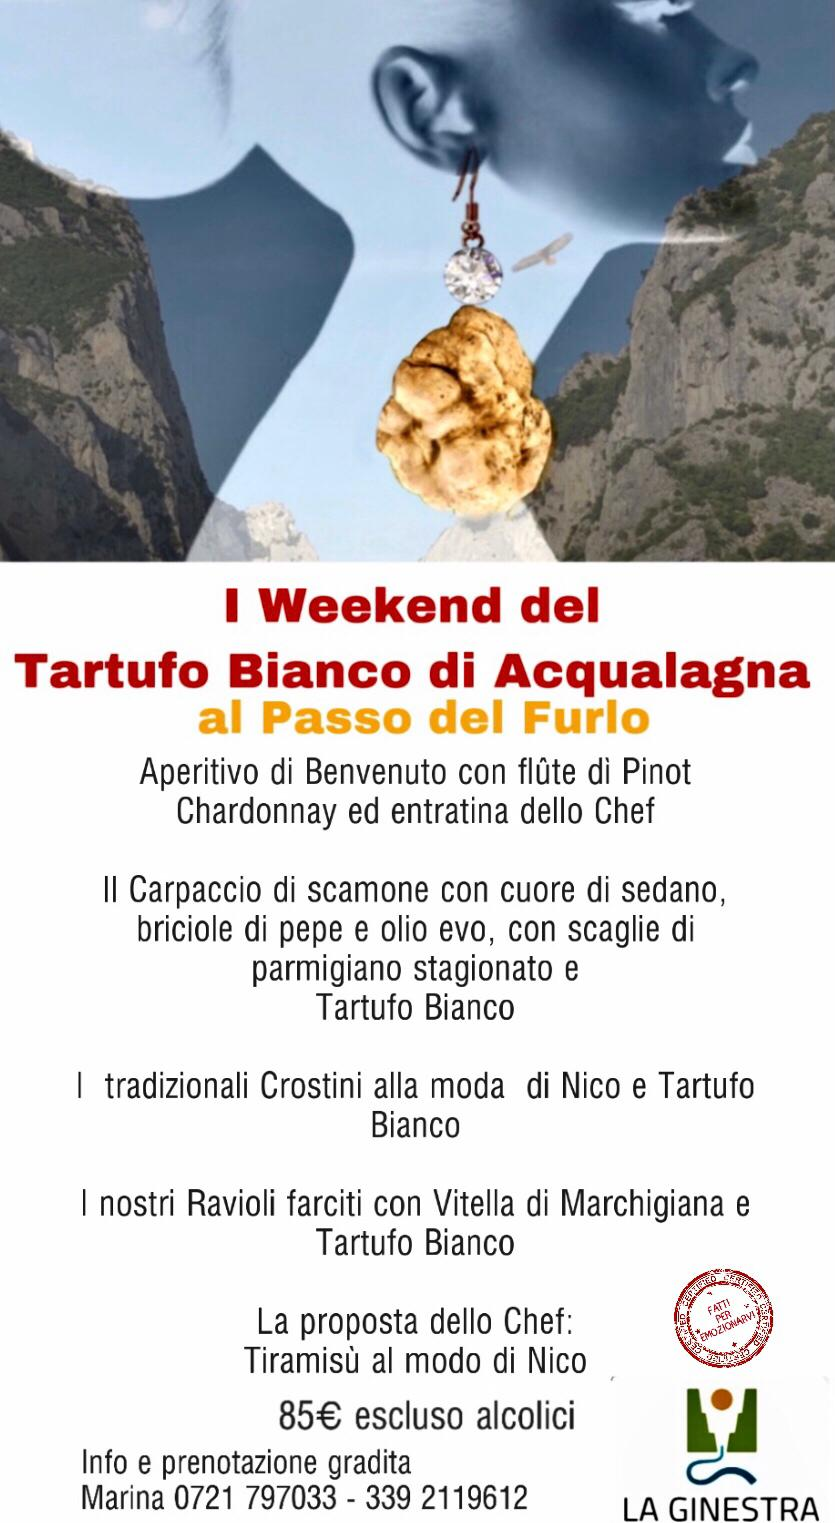 i weekend del Tartufo di Acqualagna